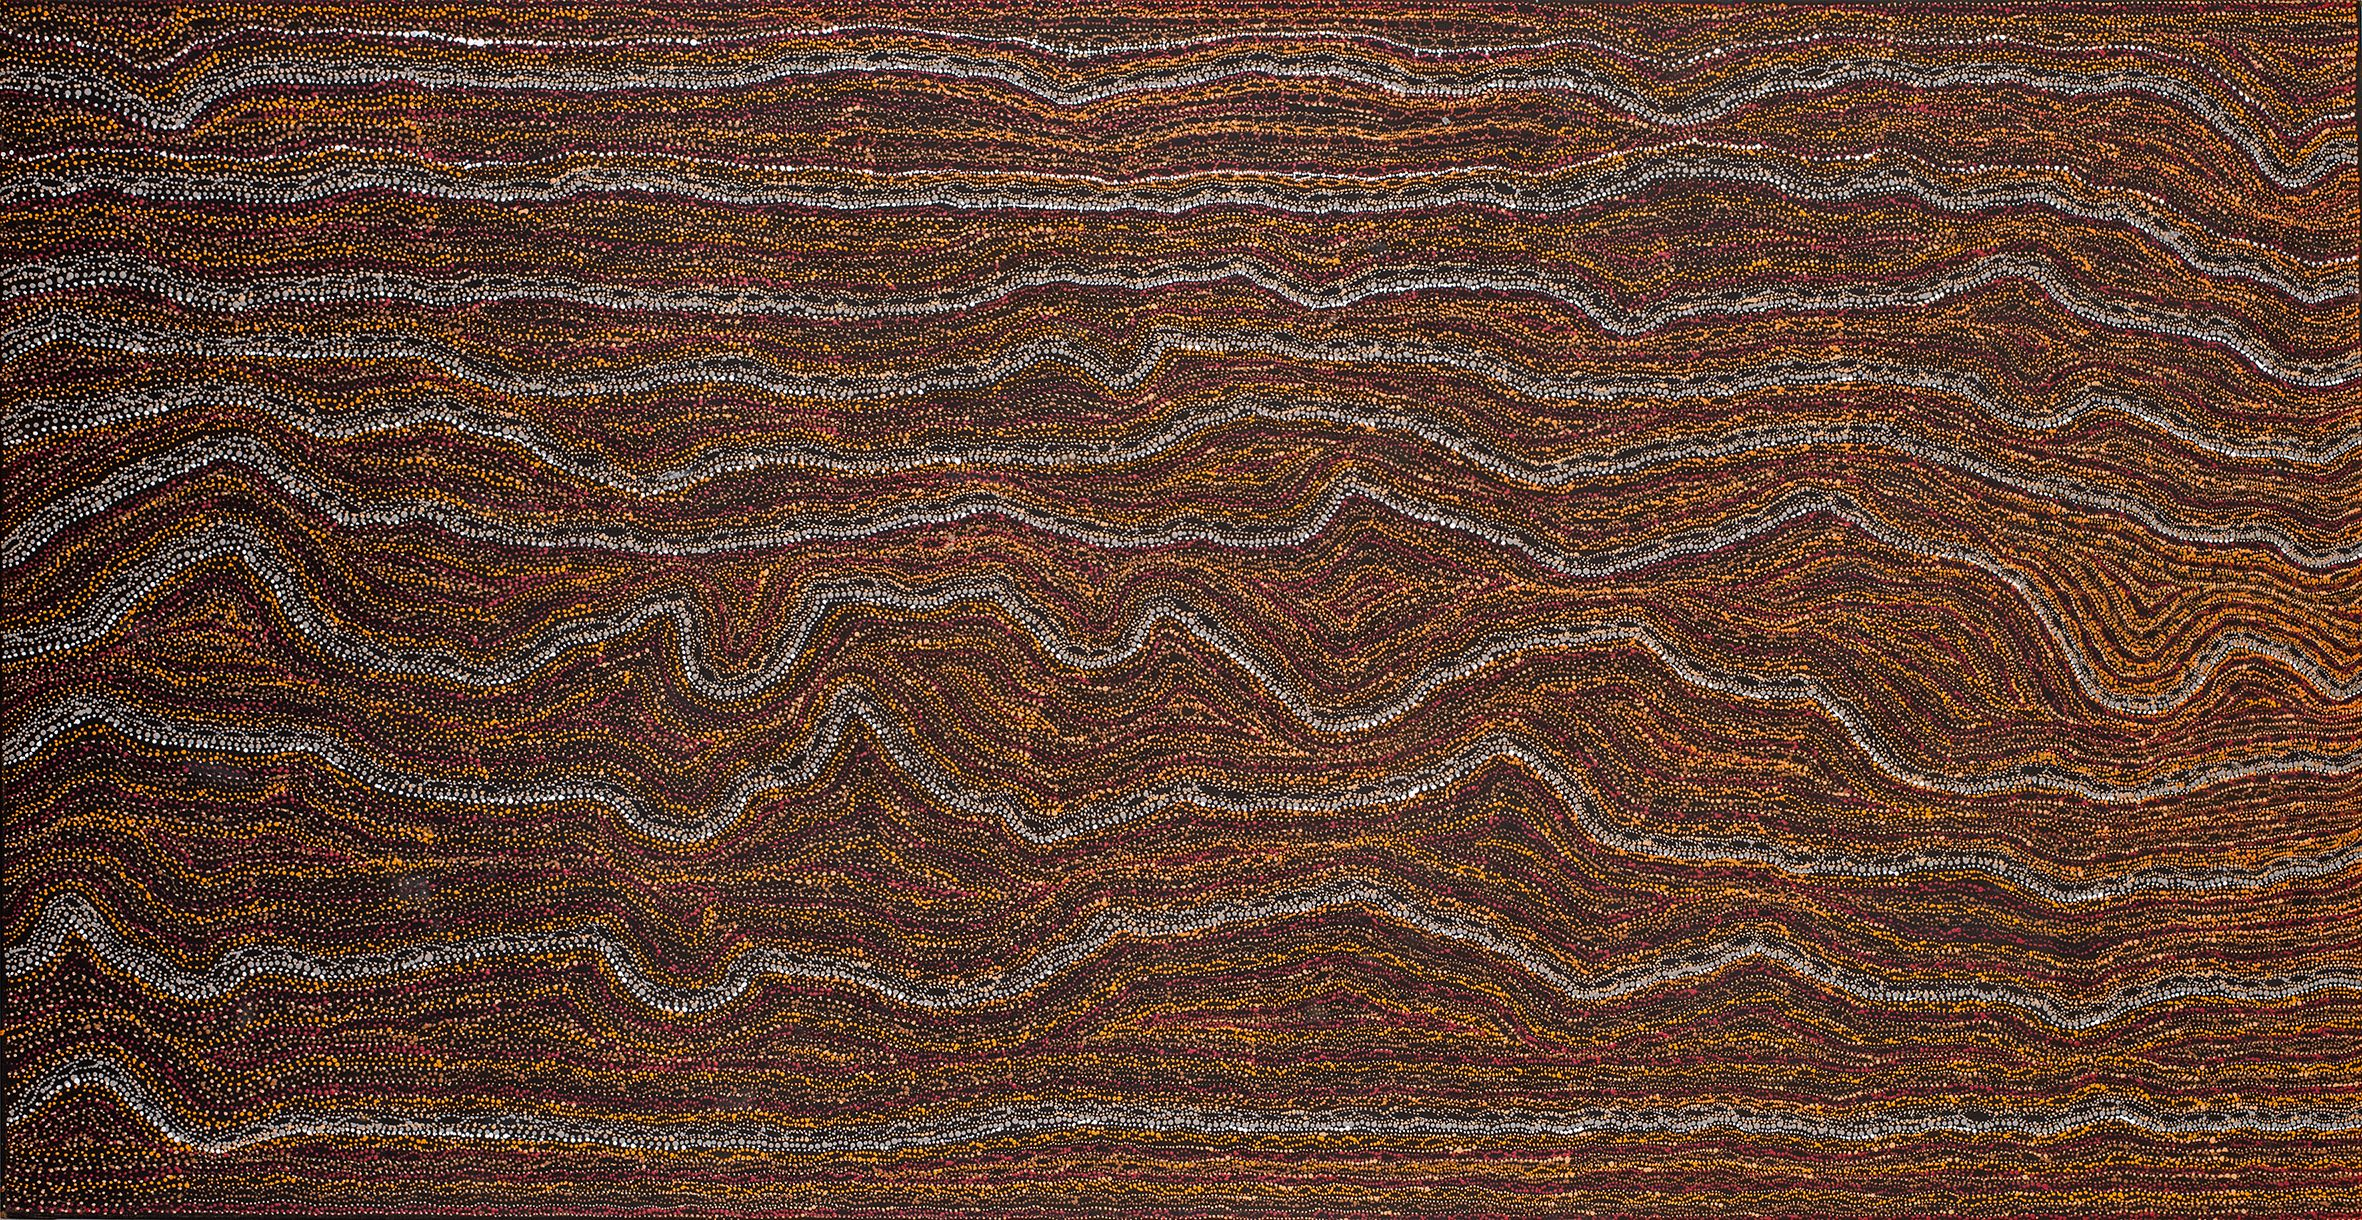 Peinture de l'artiste Sabrina Nangala Robertson, fille de l'artiste Dorothy Napangardi. Format : 240 x 120 cm. Titre : Mina Mina Dreaming time story. © Photo : Aboriginal Signature Estrangin gallery with the courtesy of the artists and Yuendumu.